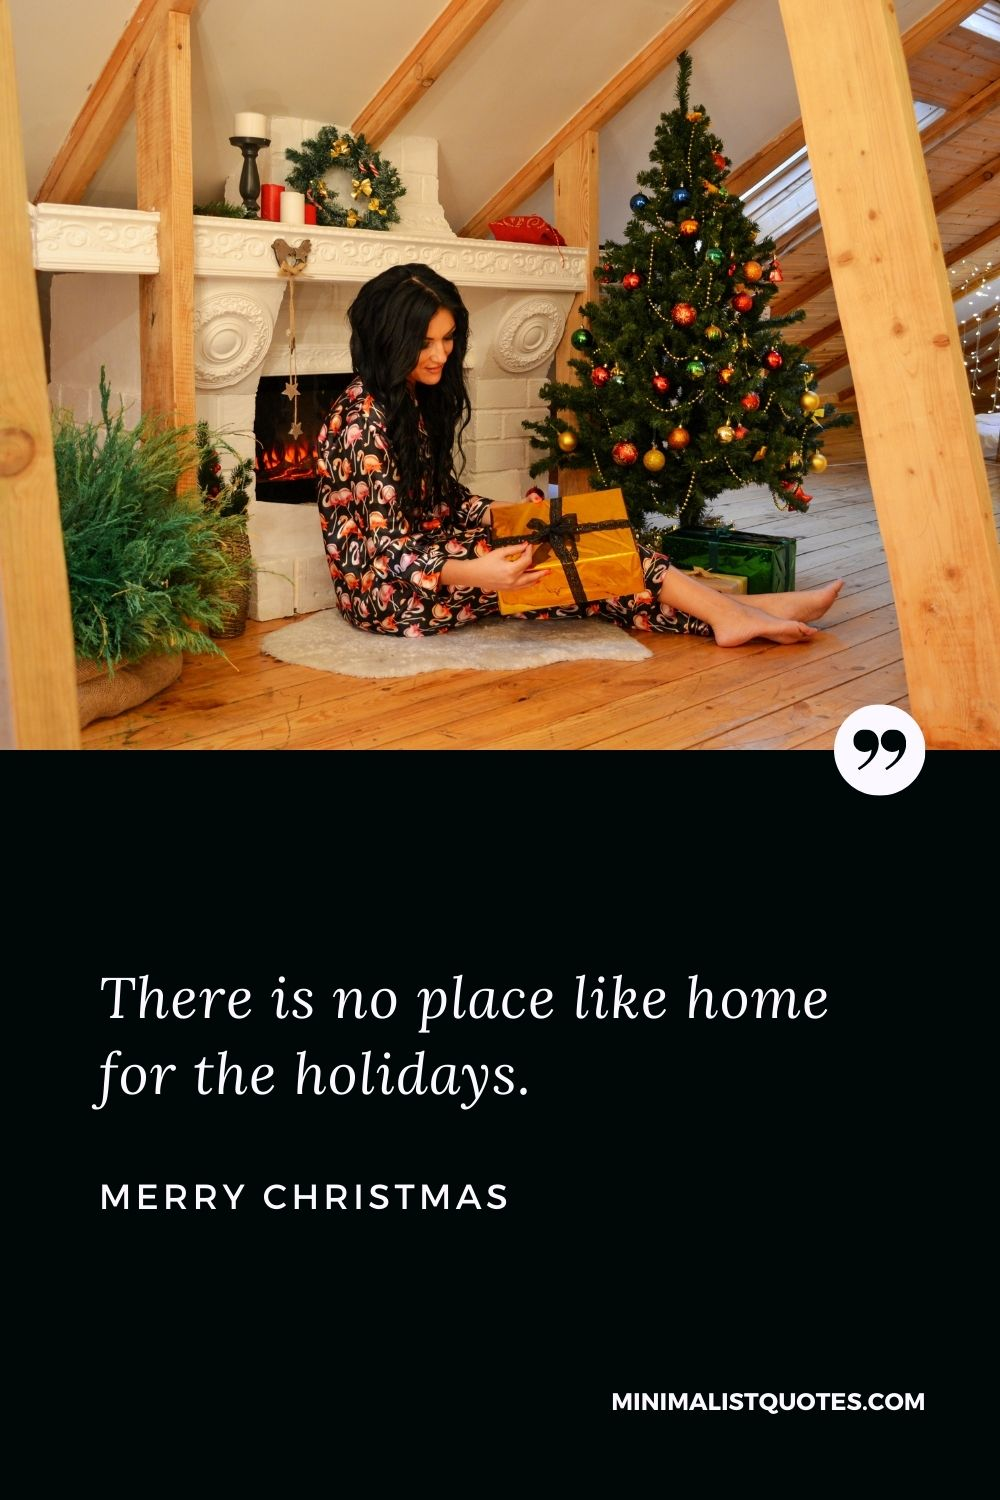 Merry Christmas Wish - There is no place like home for the holidays.